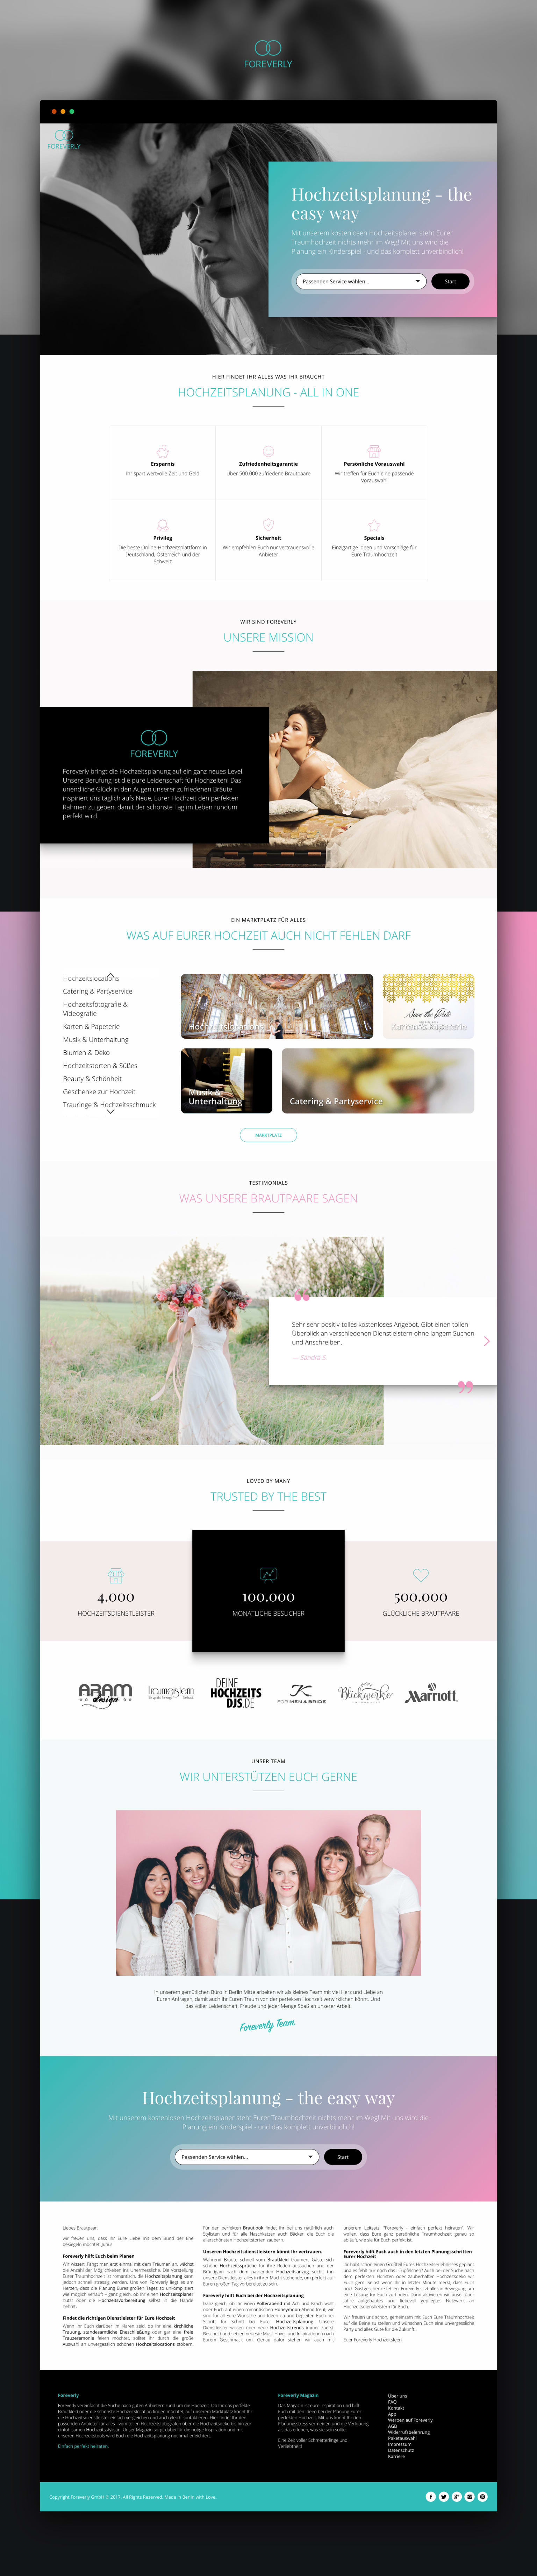 Foreverly Landing Page